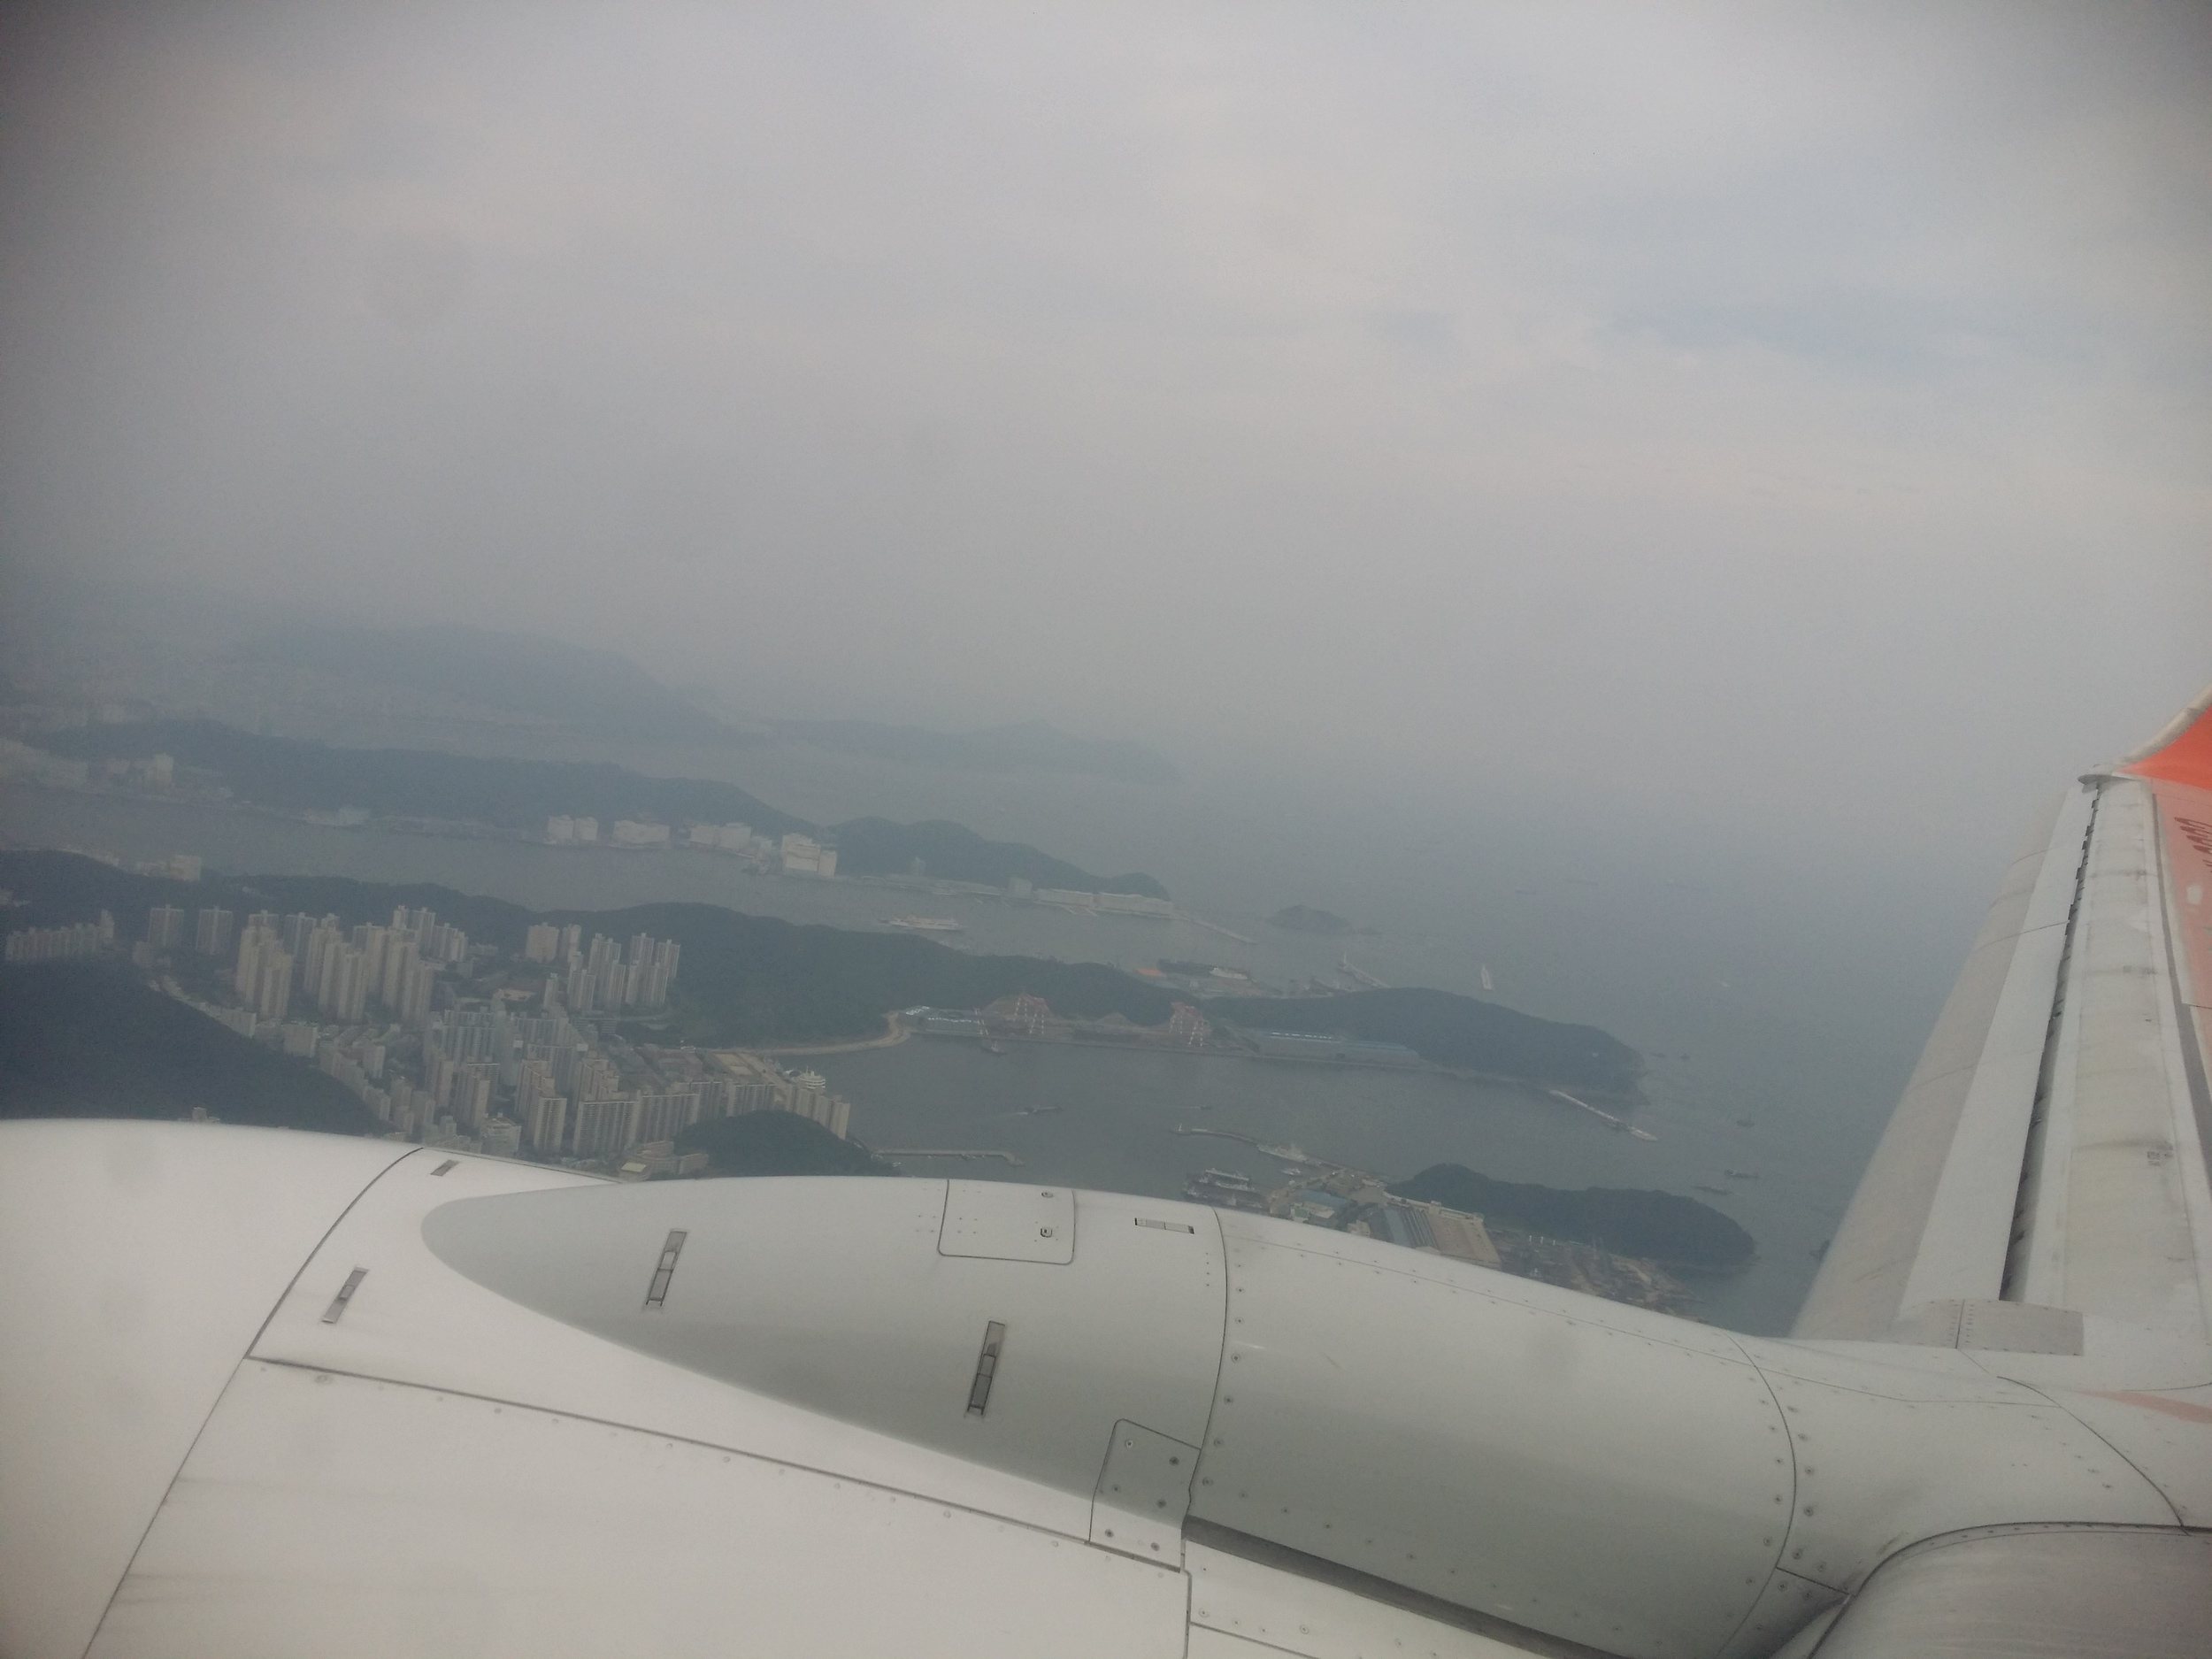 Flying with Jeju Air over a cloudy Korea